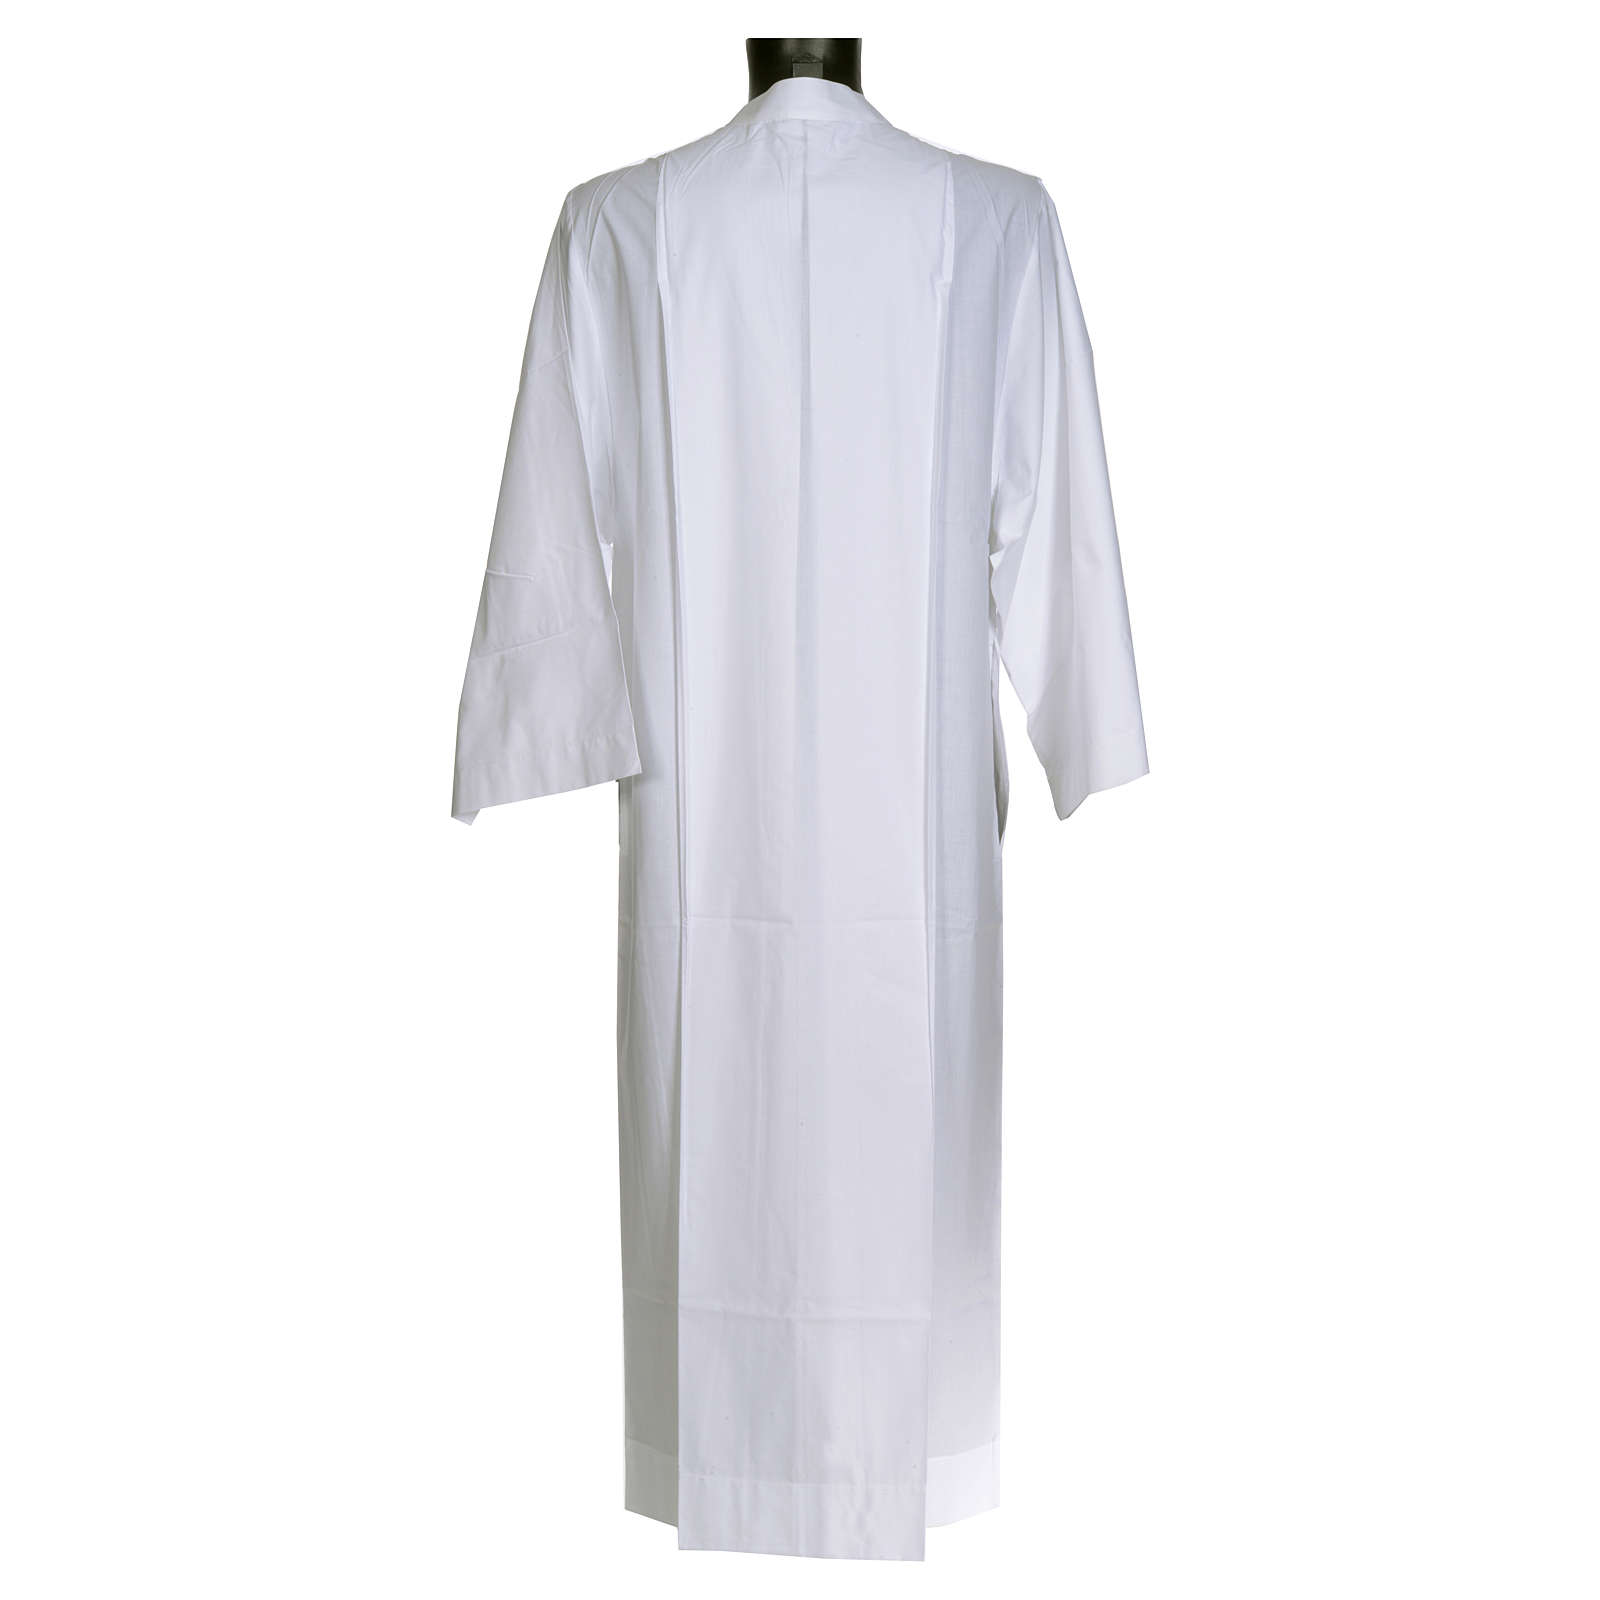 Priest alb in cotton and polyester, simple design 4